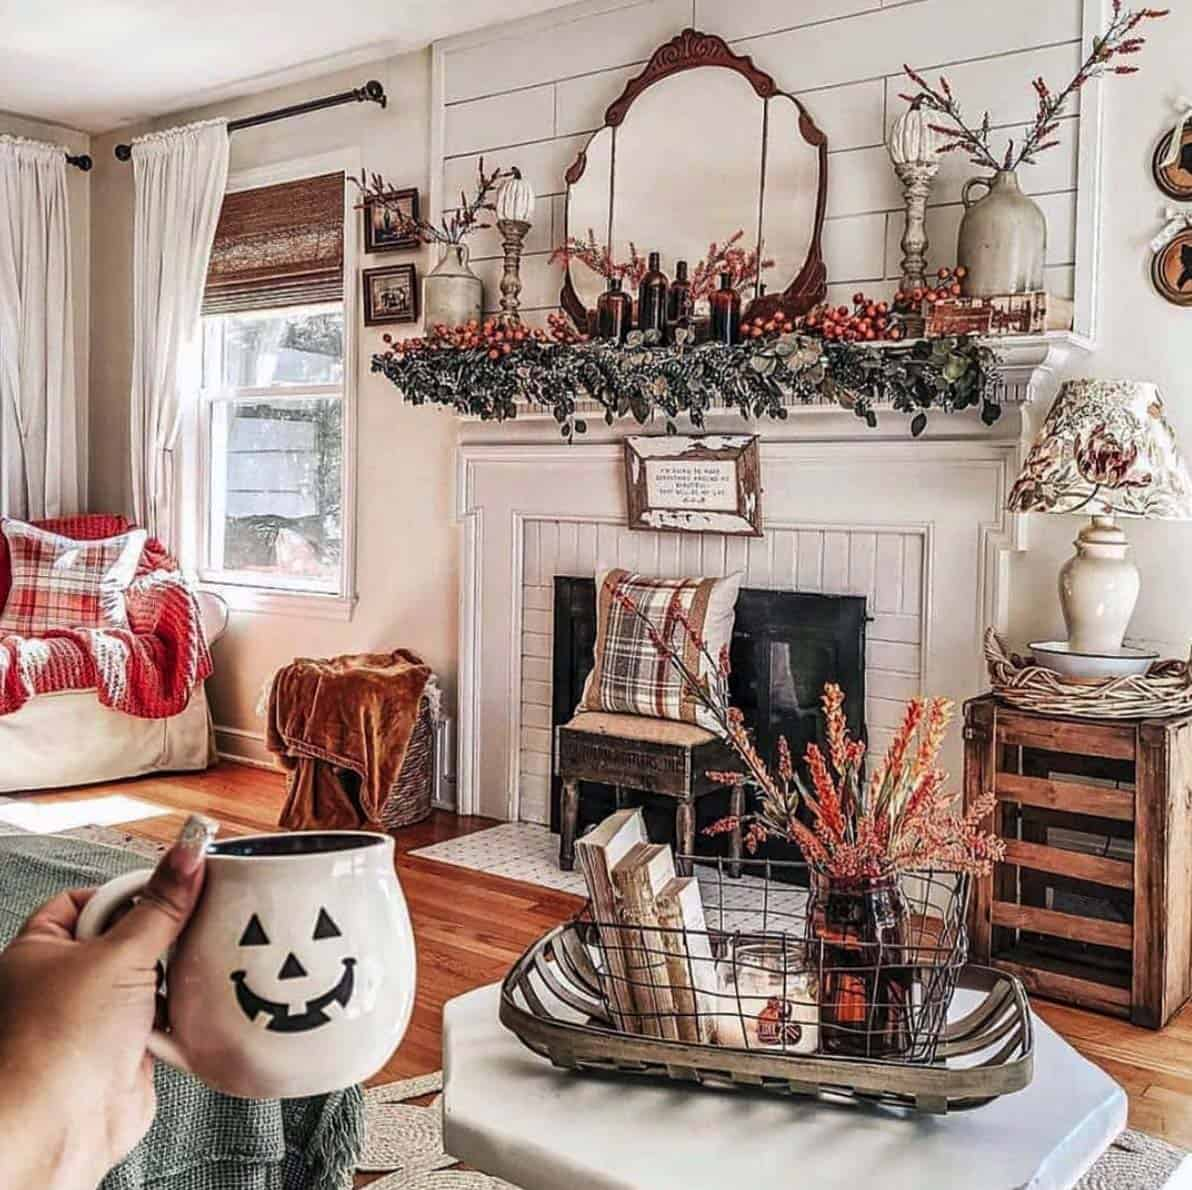 Cozy-Farmhouse-Fall-Decor-Ideas-12-1-Kindesign